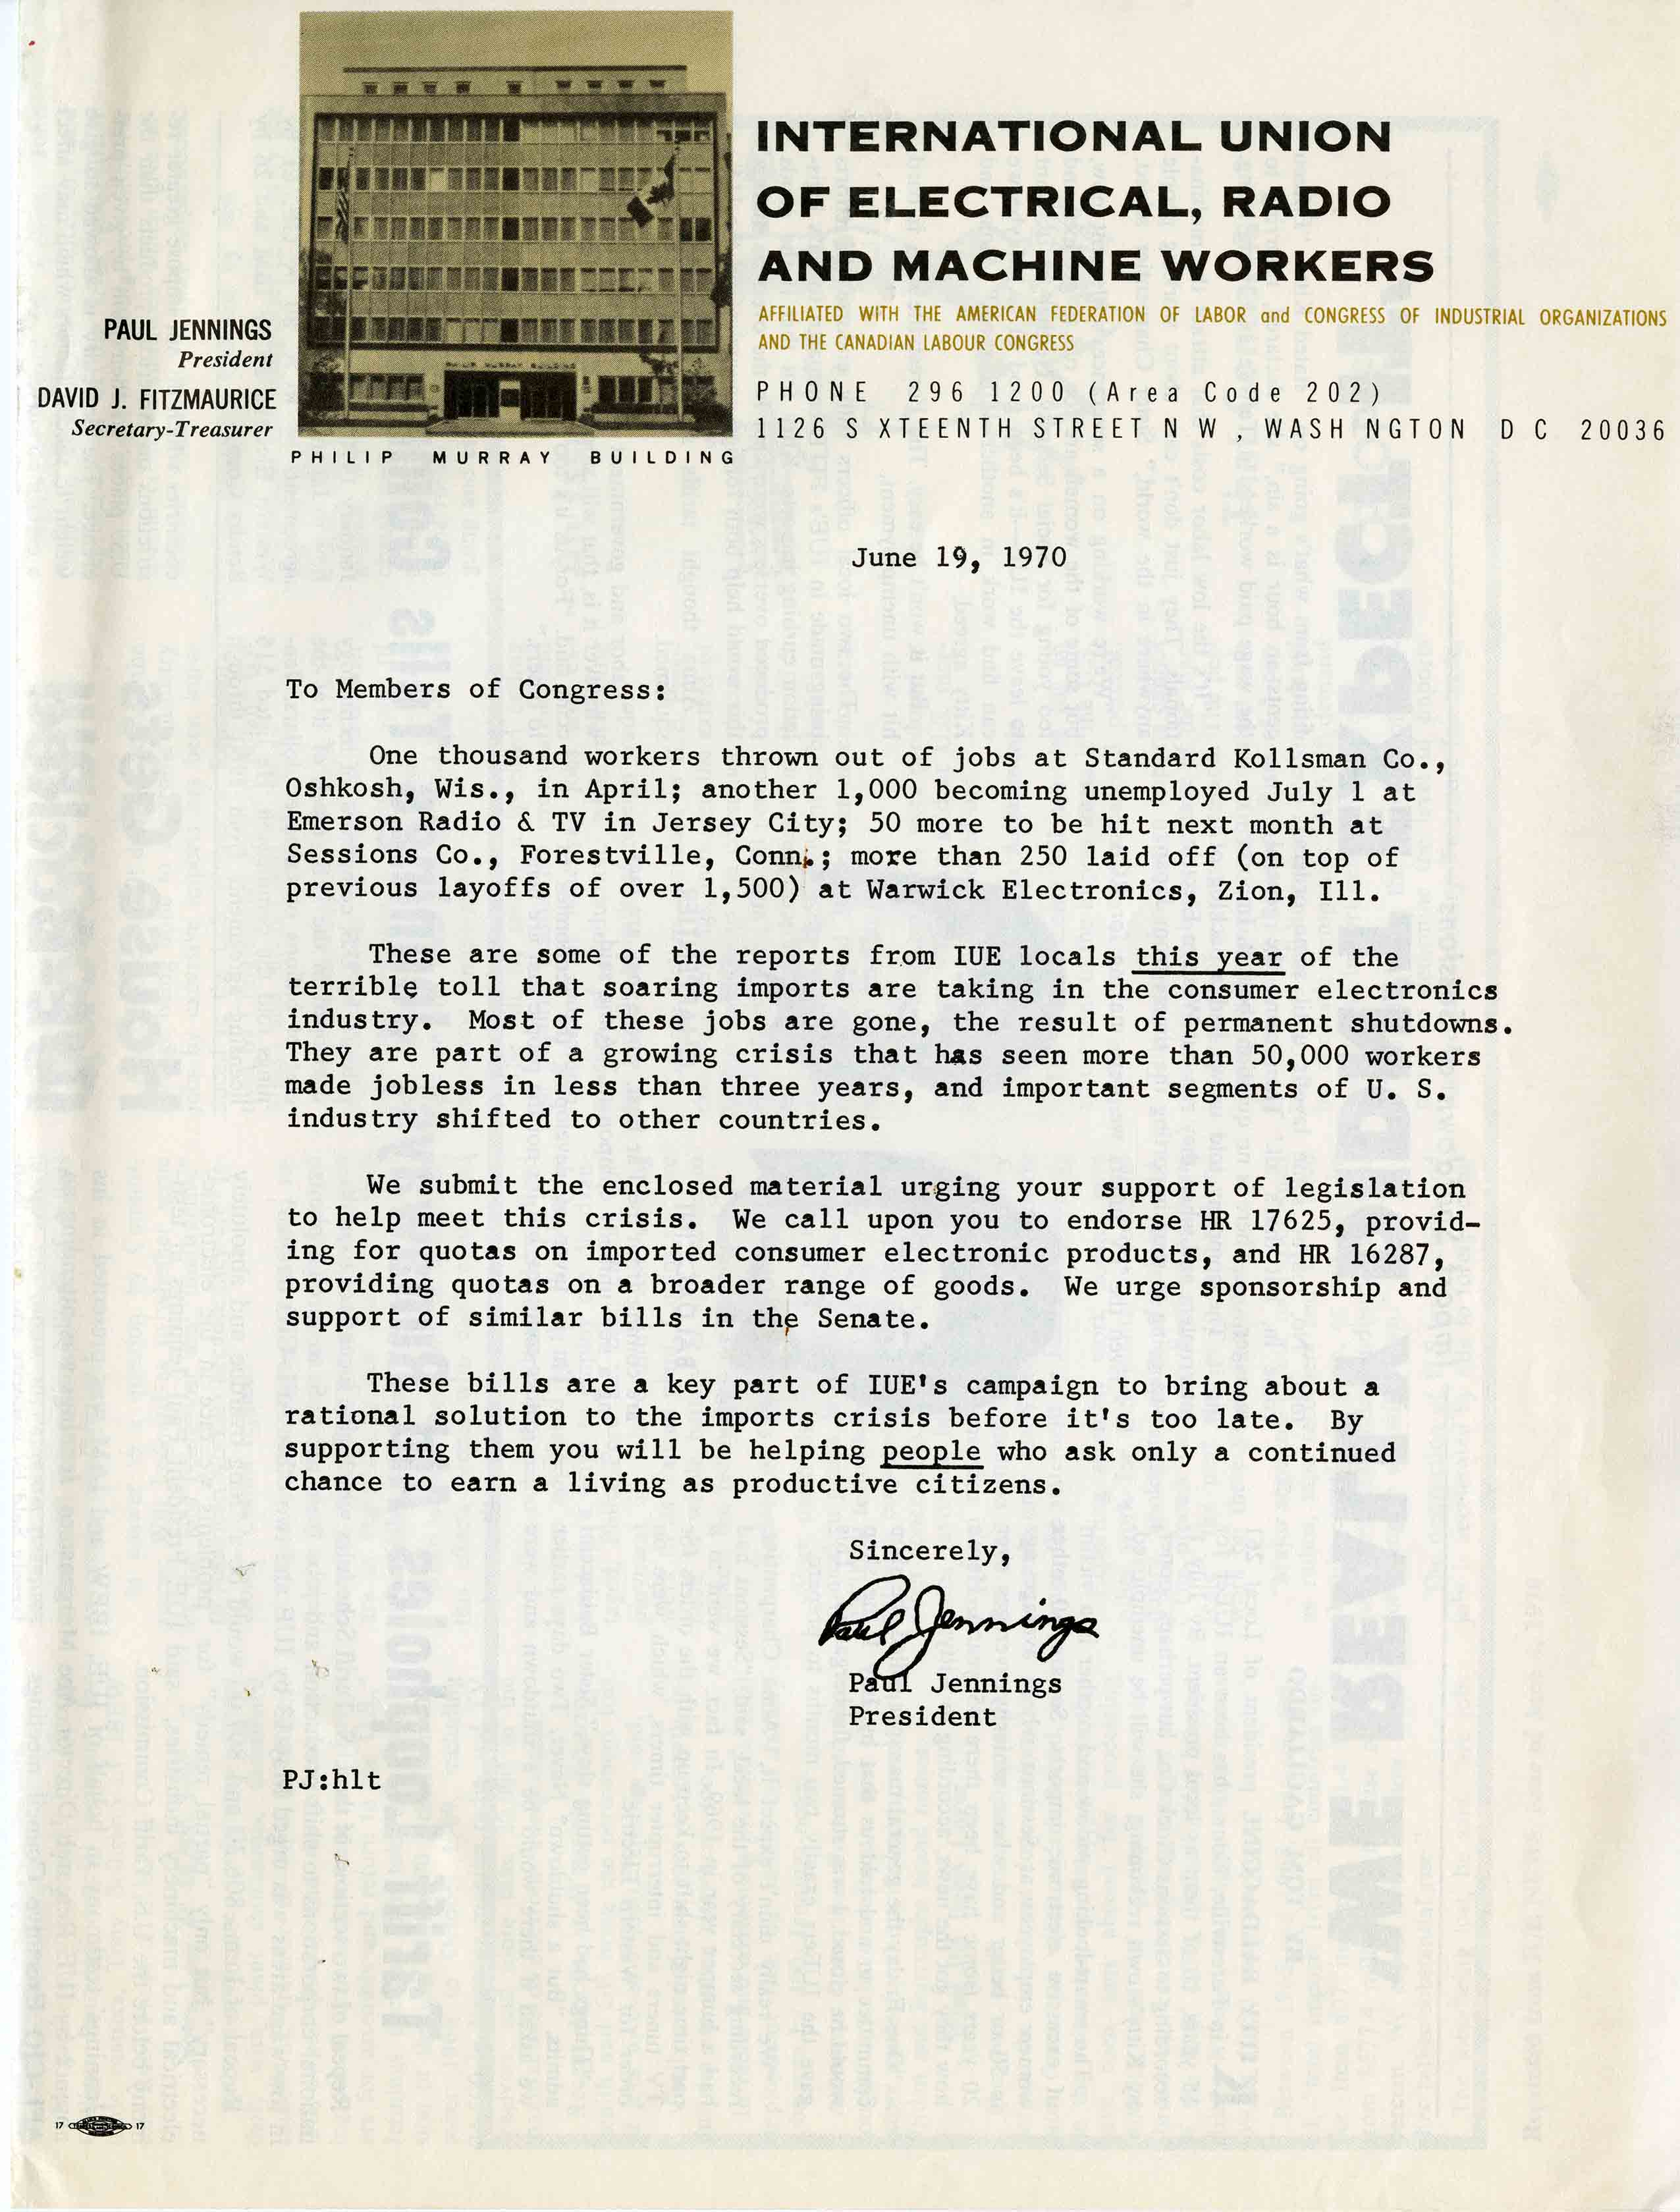 Letter about plant closures from the International Union of Electrical, Radio and Machine Workers, June 19, 1970, from the James A. Ingalls Papers